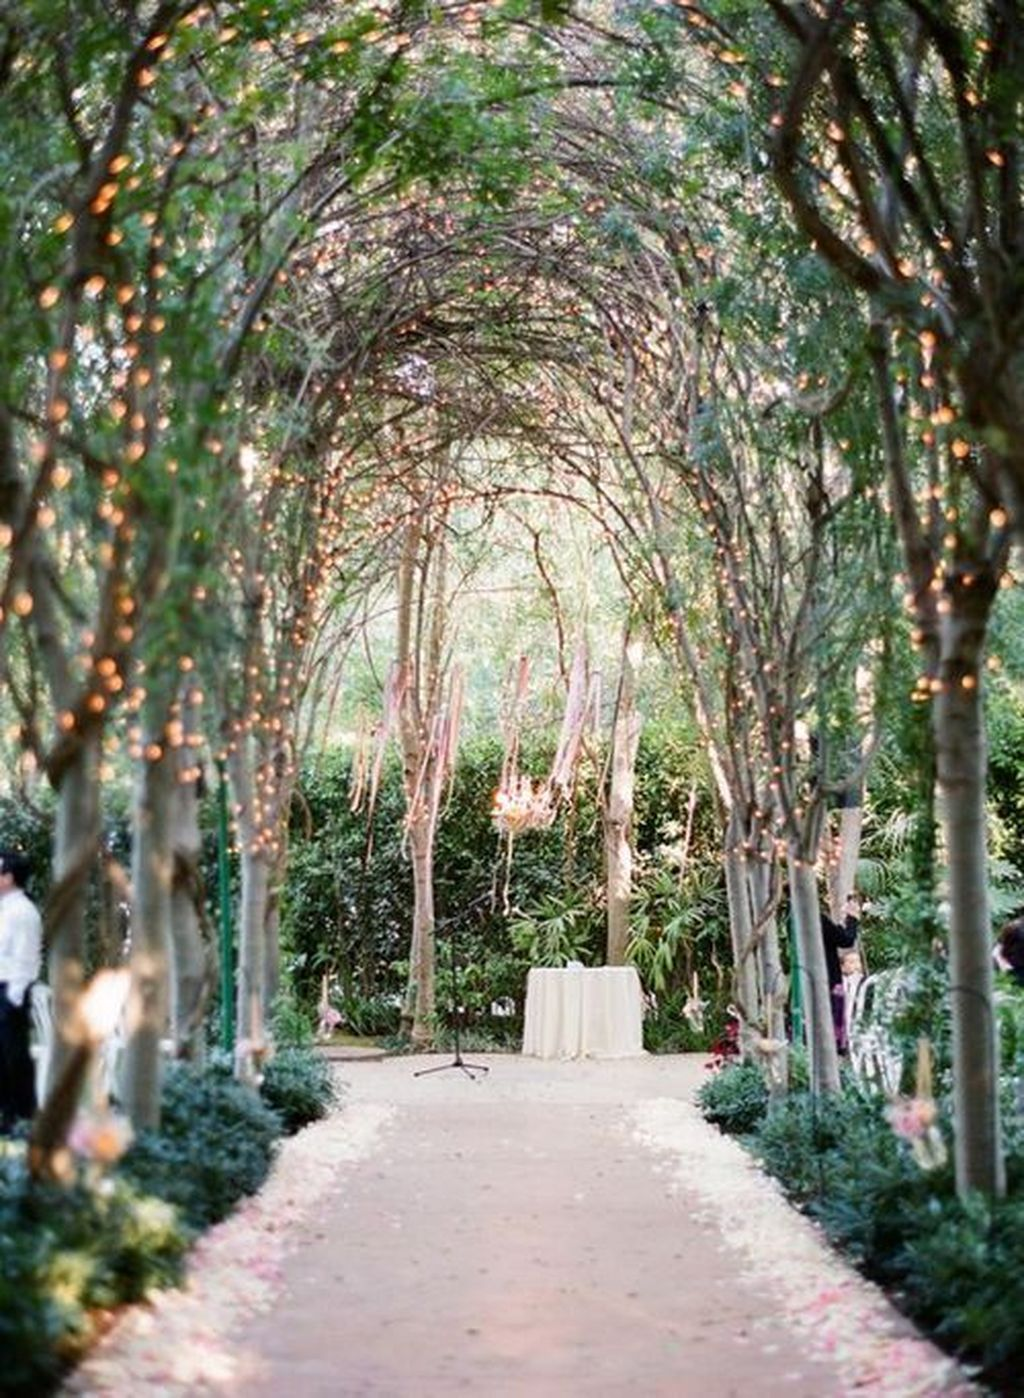 Outdoor garden wedding decoration ideas   Creative DIY Garden Wedding Decorations Ideas  Garden and